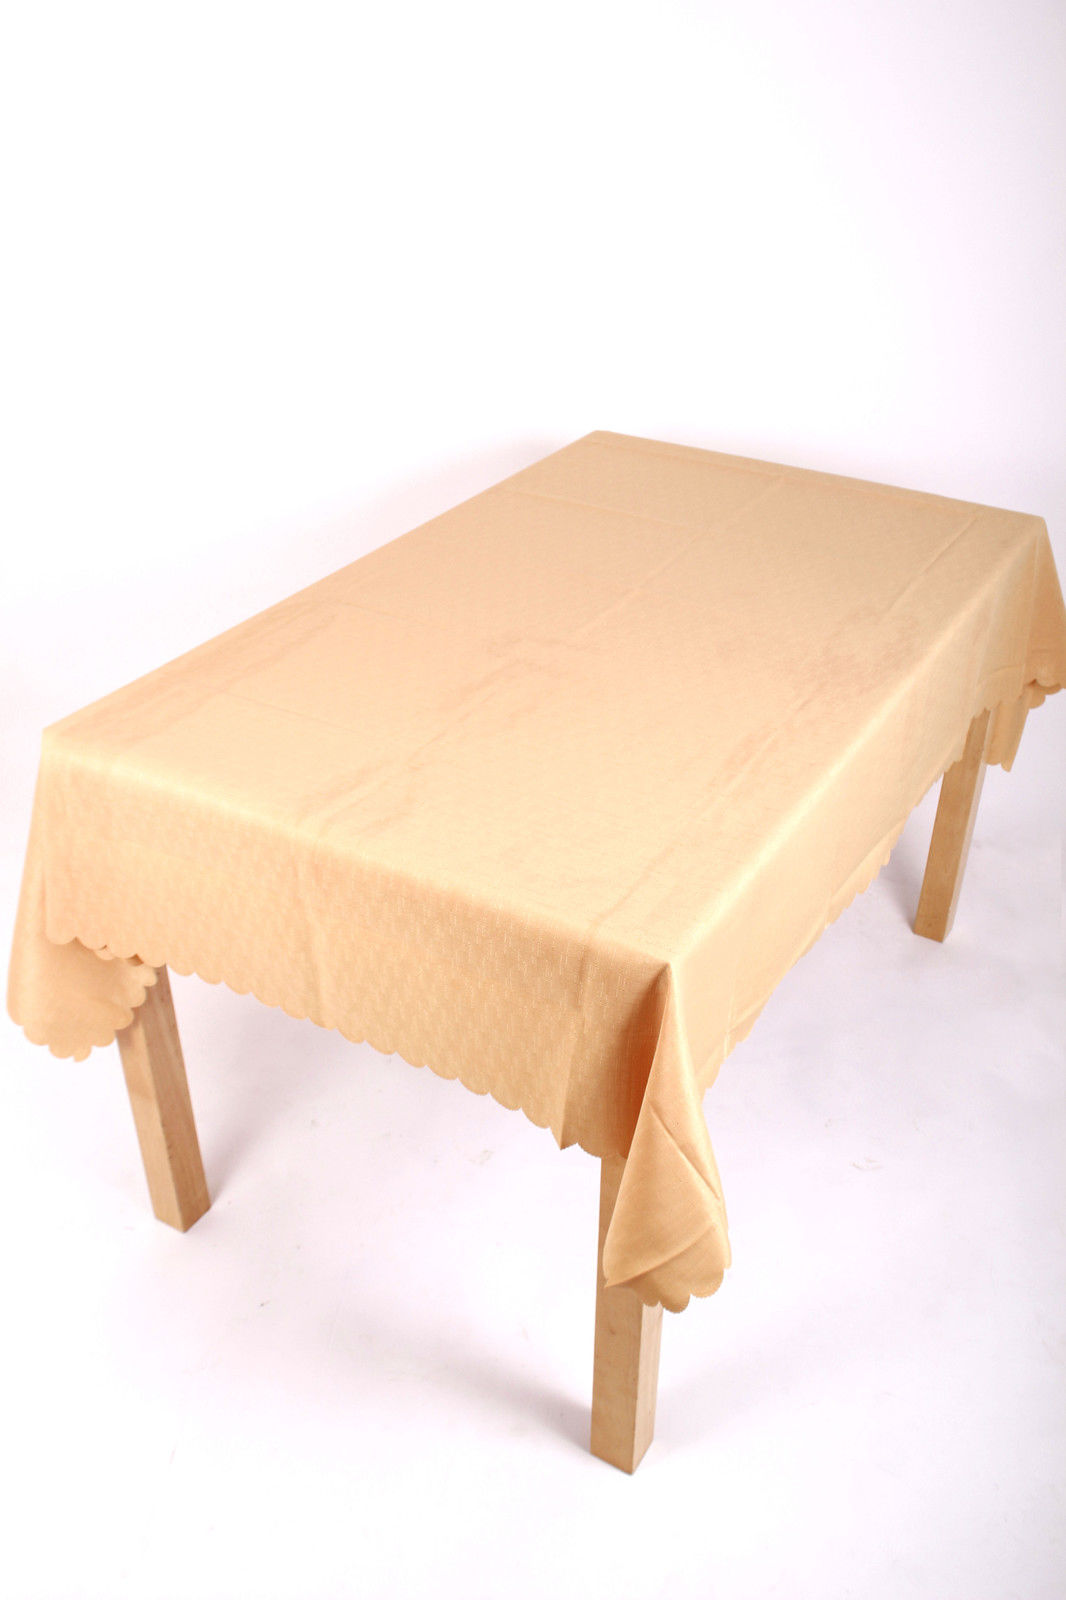 Shell Tablecloth Gold 91x91cm